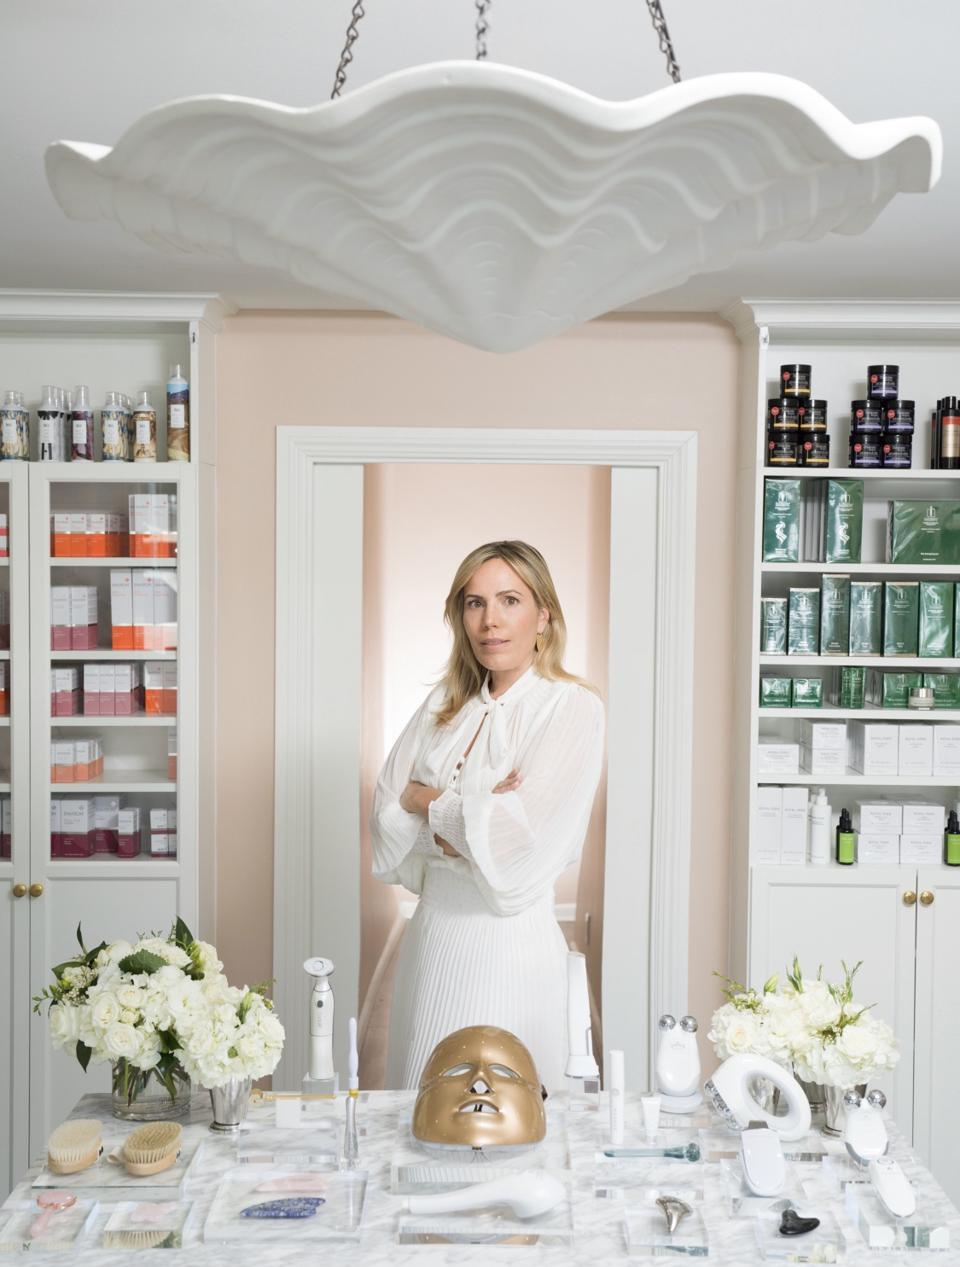 Knockout Beauty founder Cayli Cavaco Reck standing in her store/